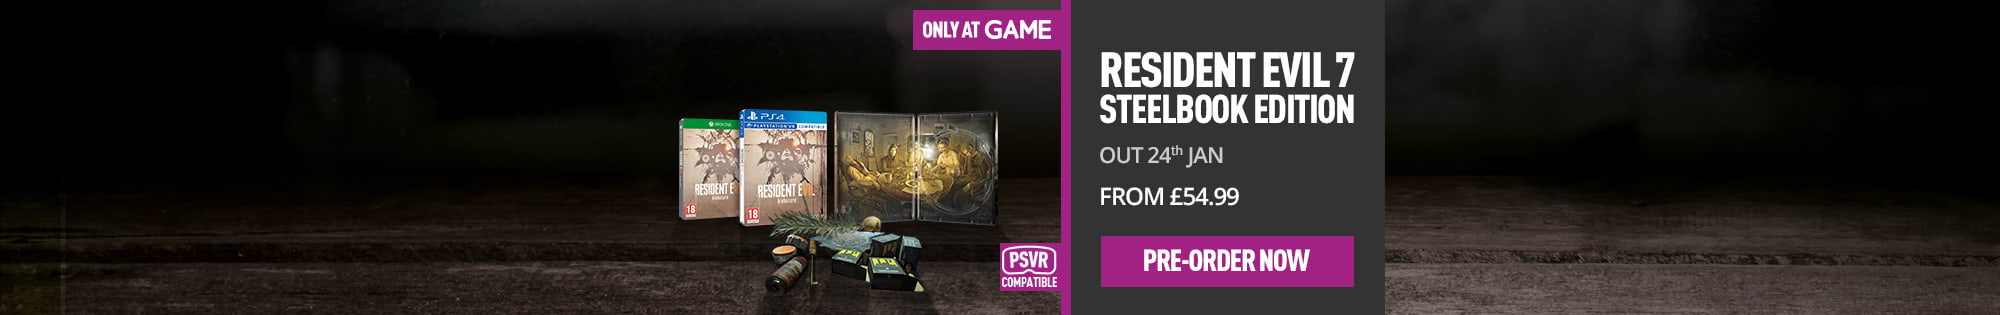 Resident Evil VII for Xbox One, PS4 and PC - Pre-order Now at GAME.co.uk